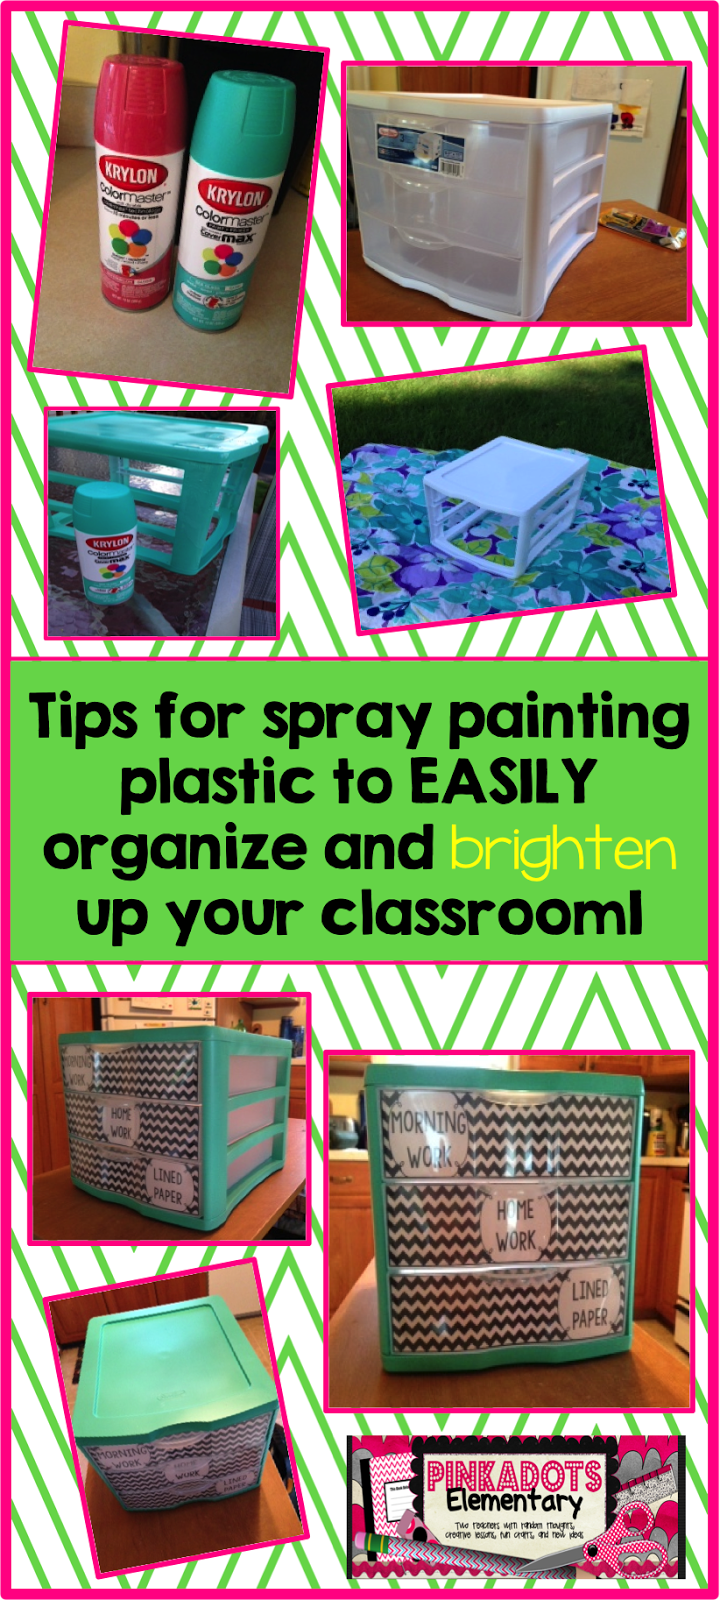 Someone was just asking about painting plastic crates for What do you paint first